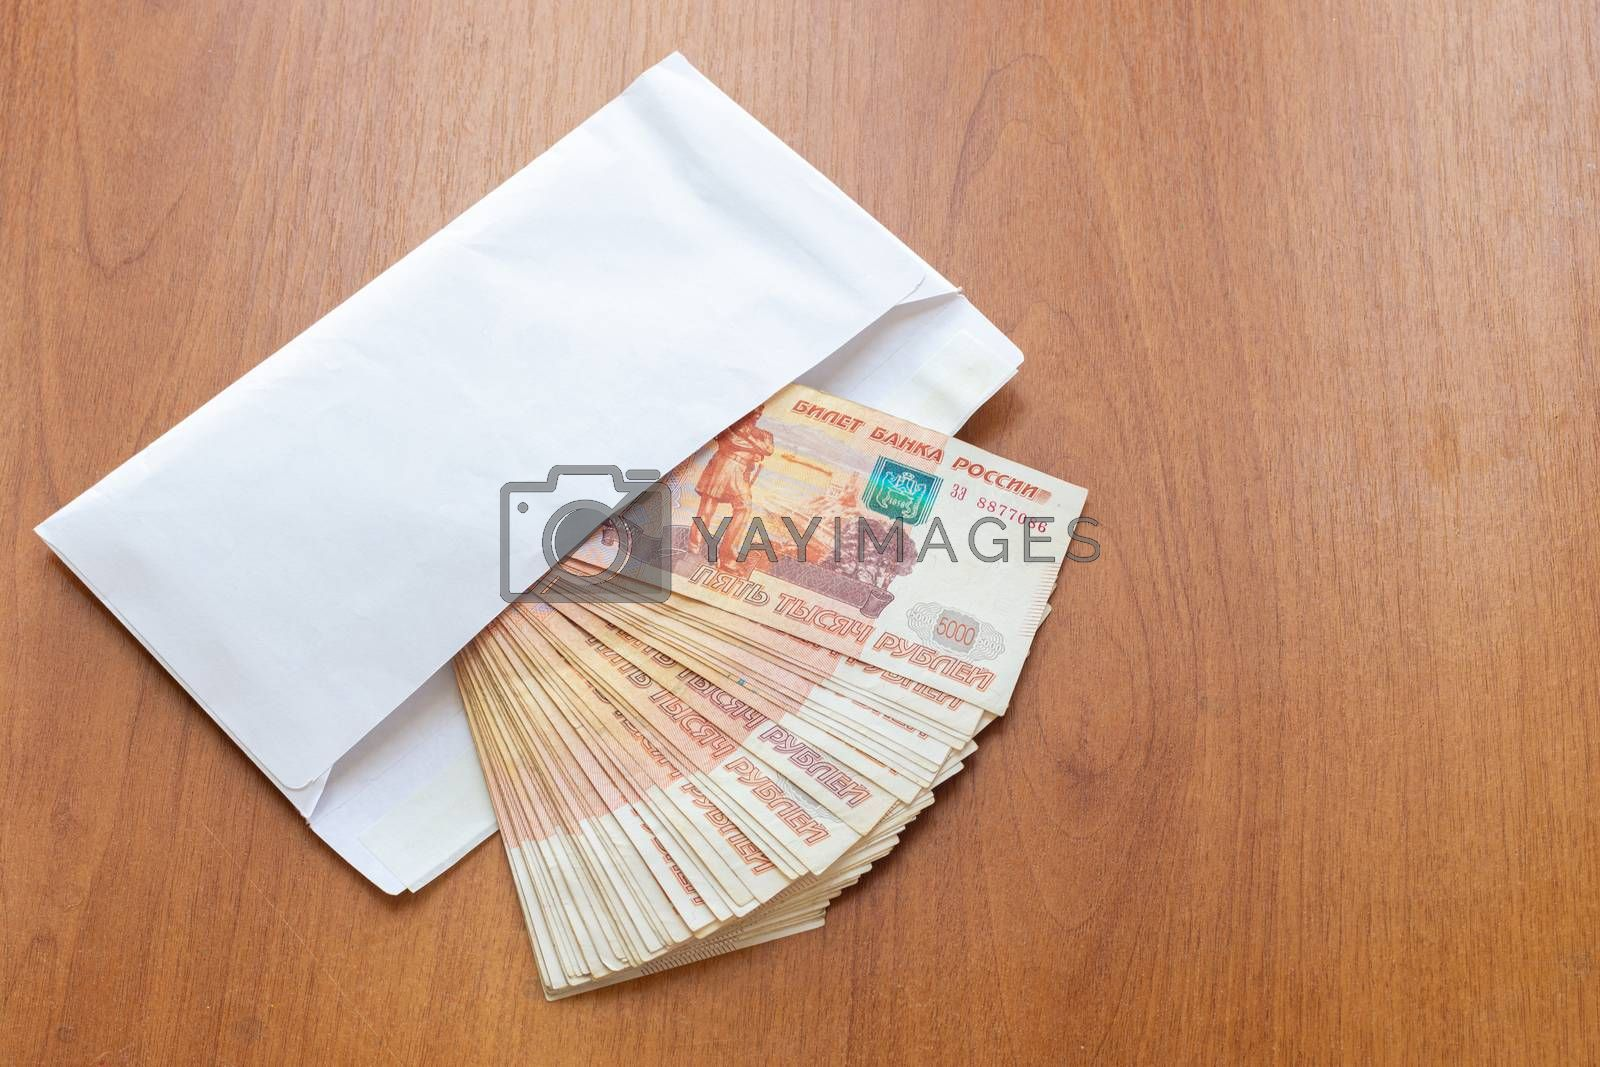 There is a bundle of money in an envelope on the table